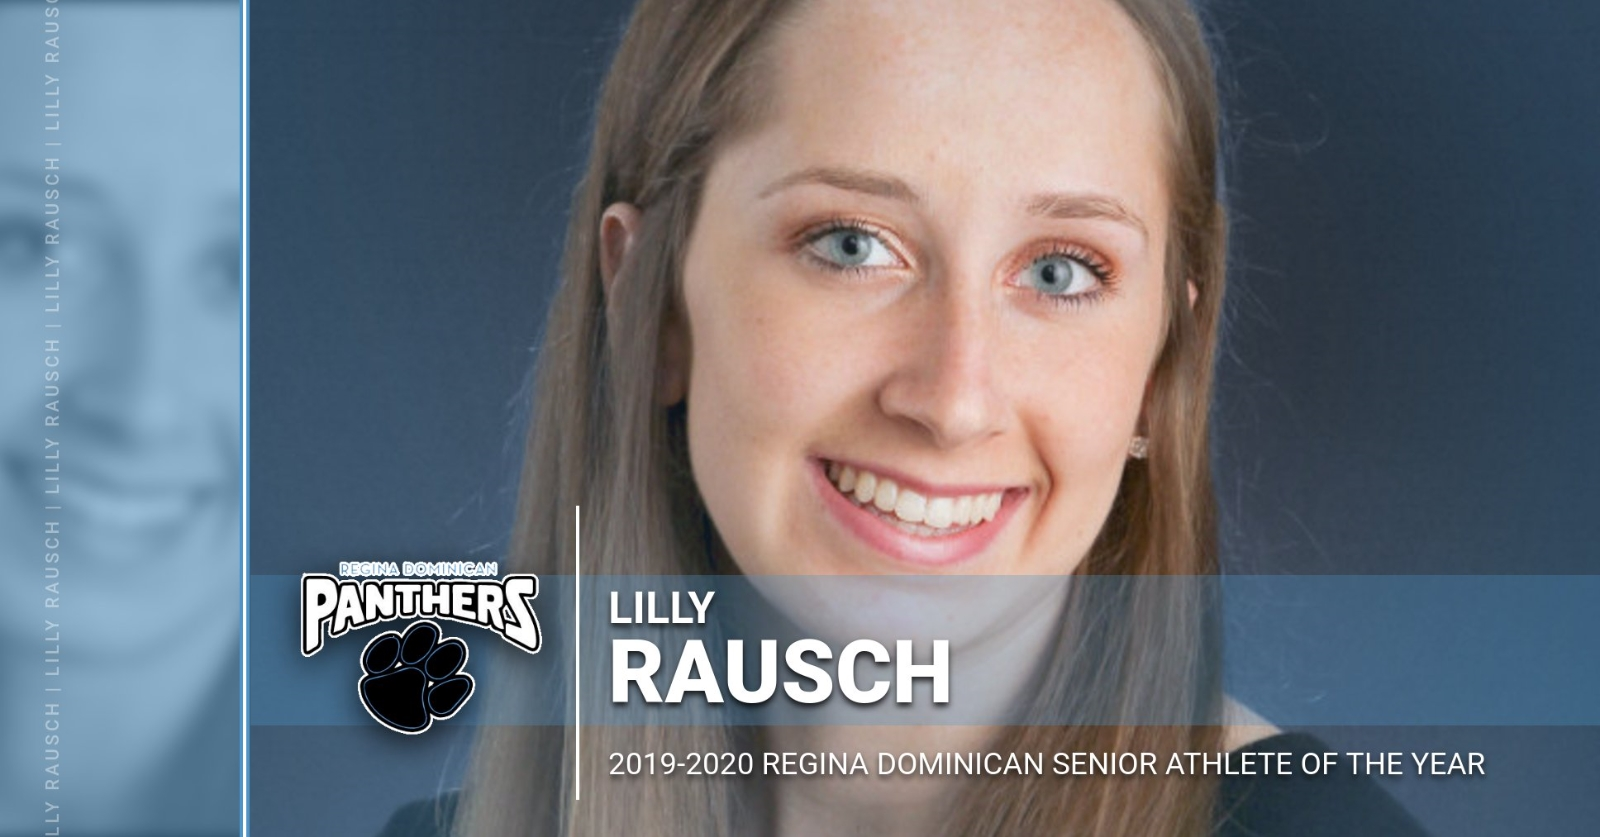 Lilly Rausch Named 2019-2020 Regina Dominican Senior Athlete of the Year